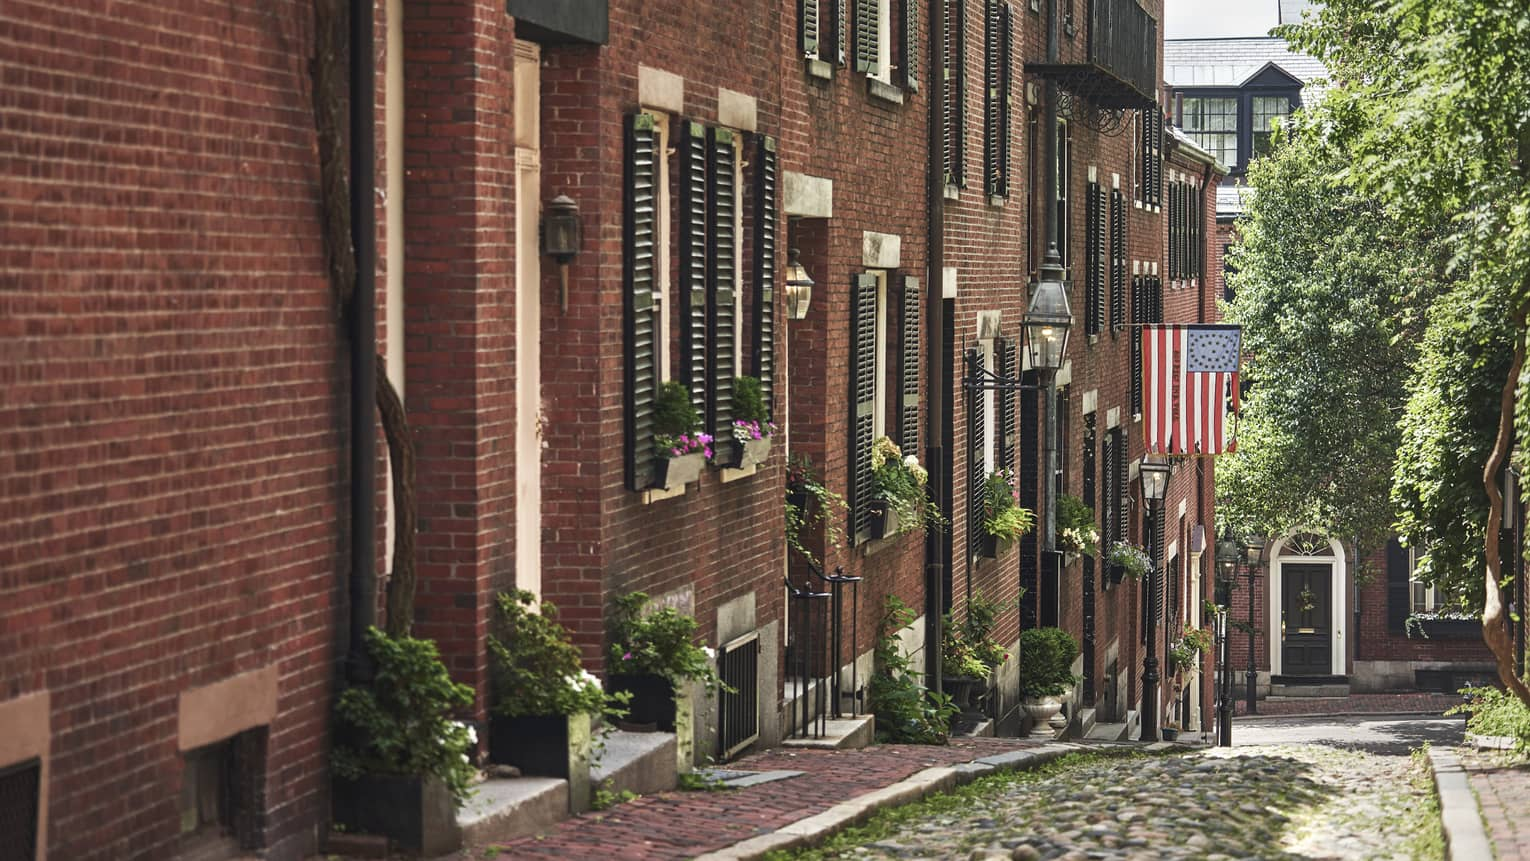 A cobblestone alley in Beacon Hill, lined with red brick residential buildings